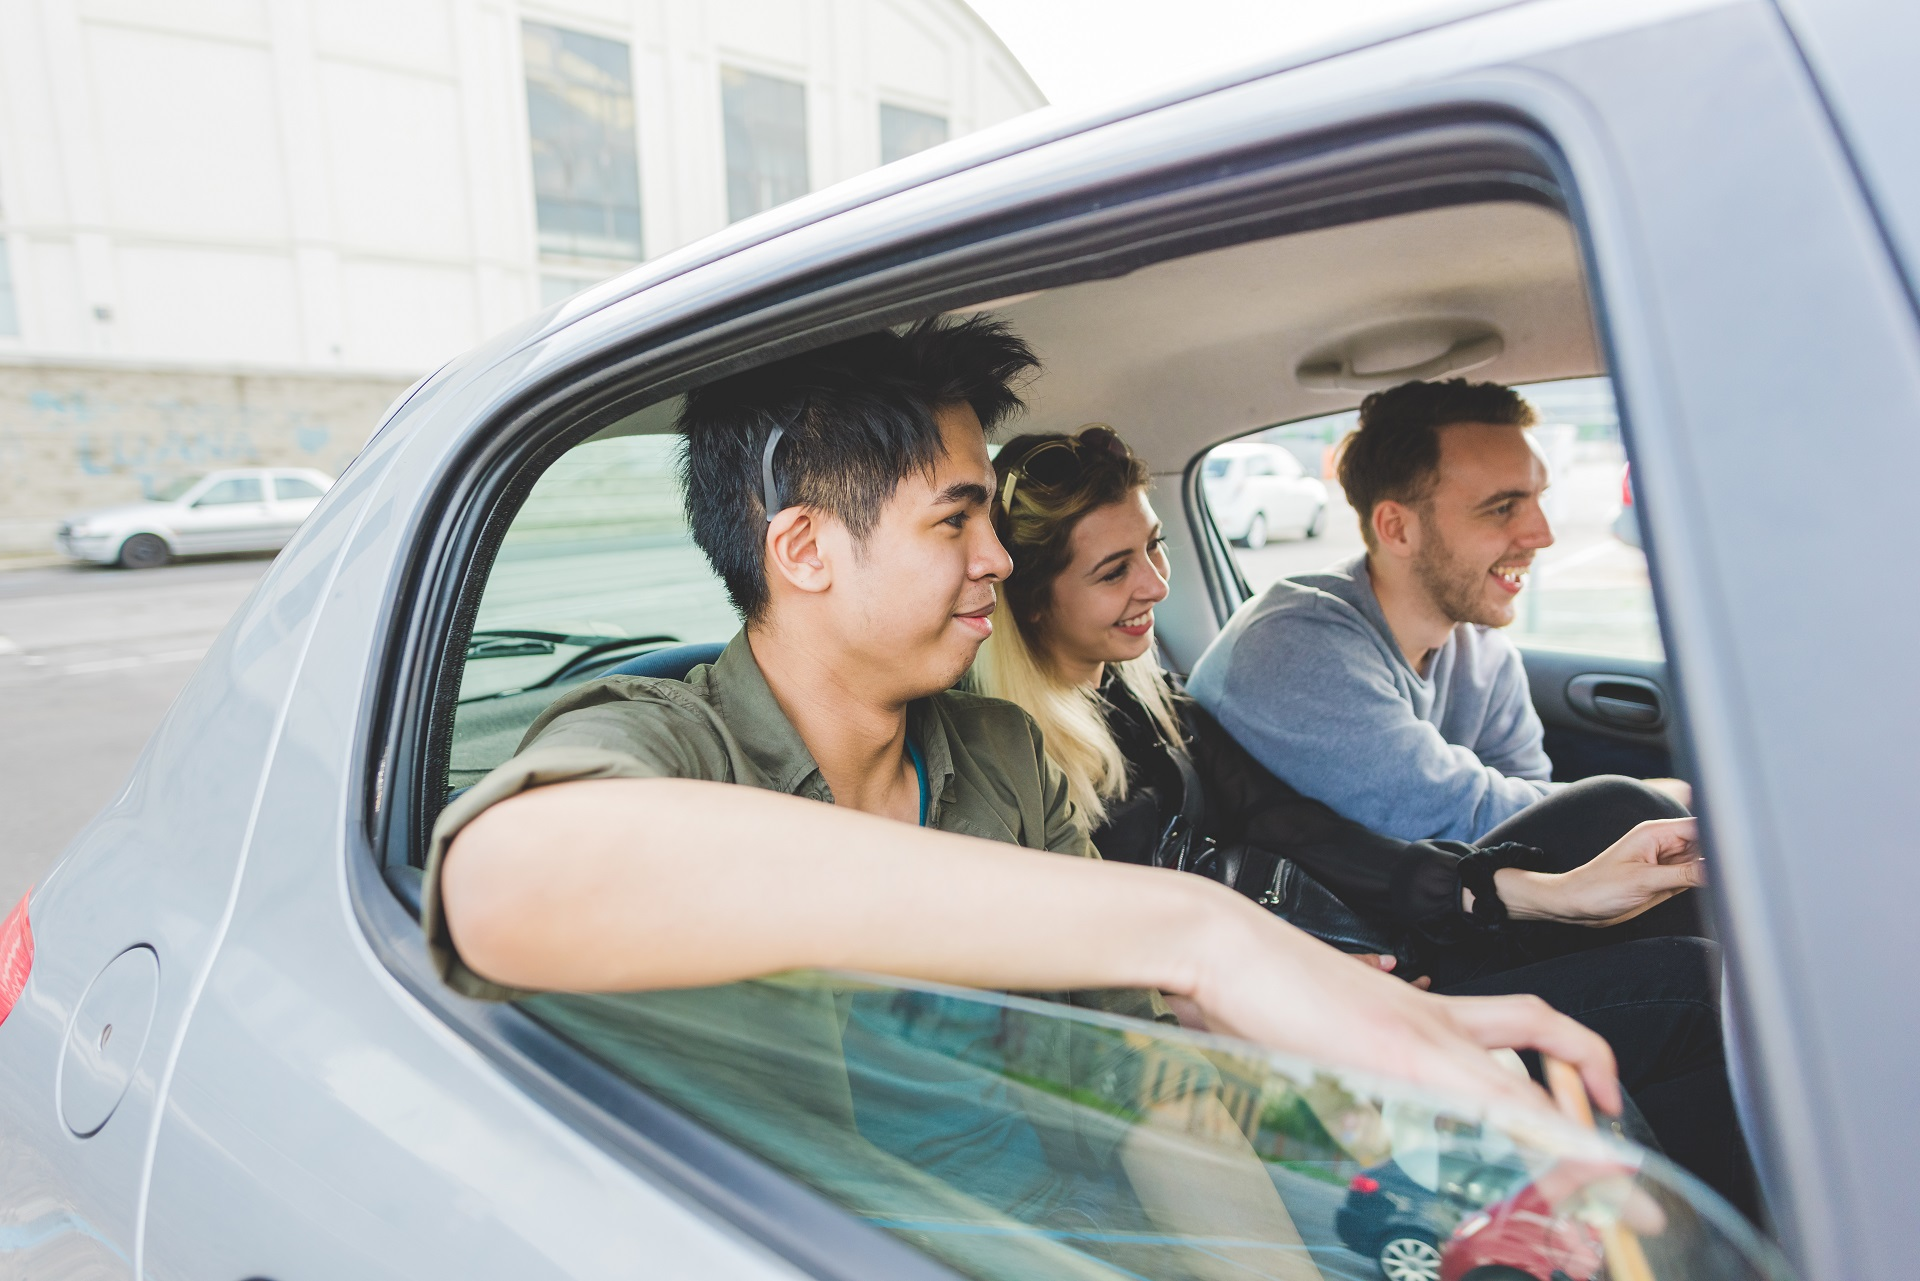 Three-young-people-sharing-the-back-seat-of-a-car-carpooling-their-way-to-work-this-is-carpooling-rather-than-car-sharing-what-is-carpool